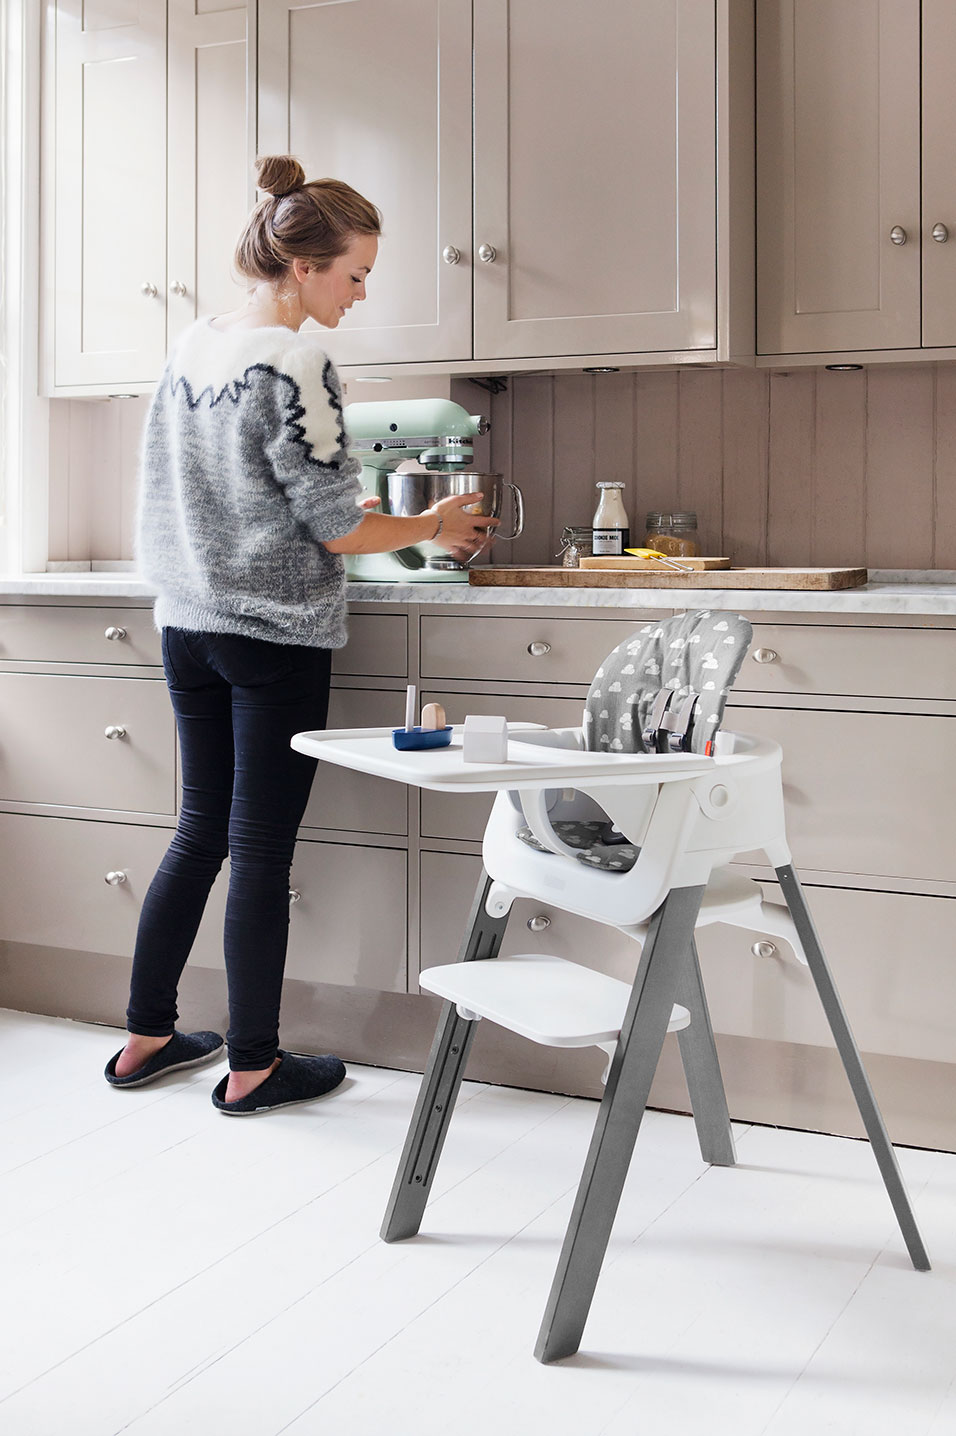 Stokke launches their Steps soft cushioned Bouncer in